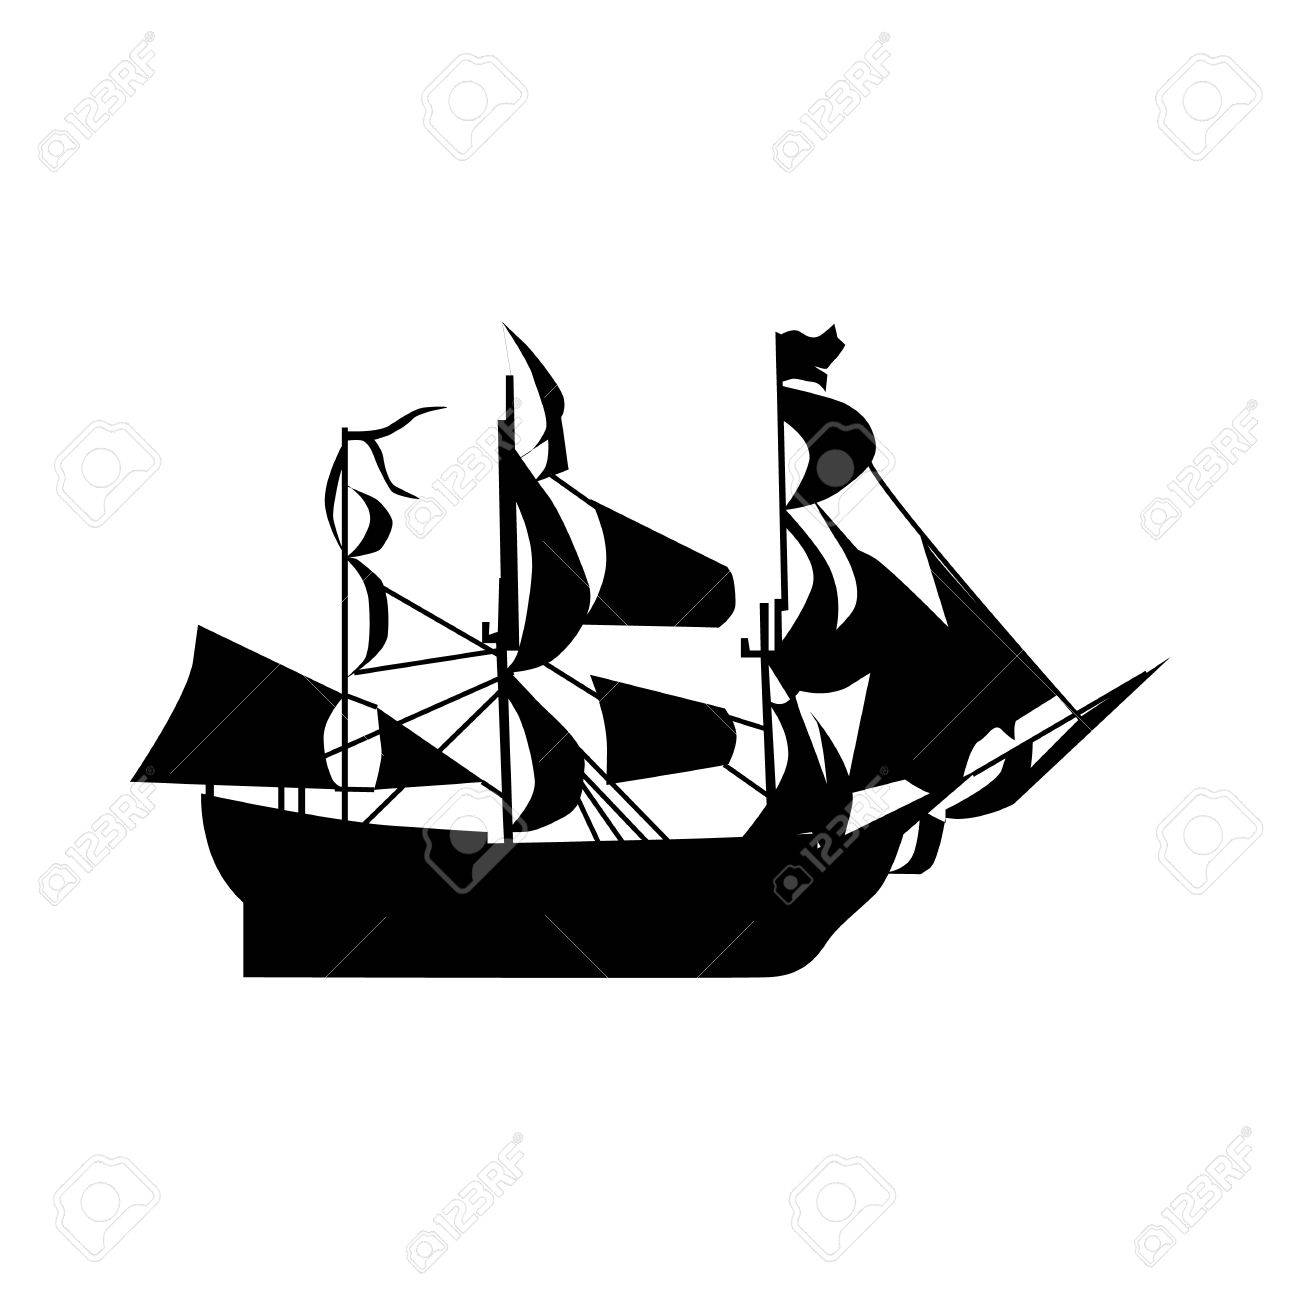 sailing ship silhouette isolated on white background royalty free rh 123rf com ships silhouettes vector ship silhouette vector free download